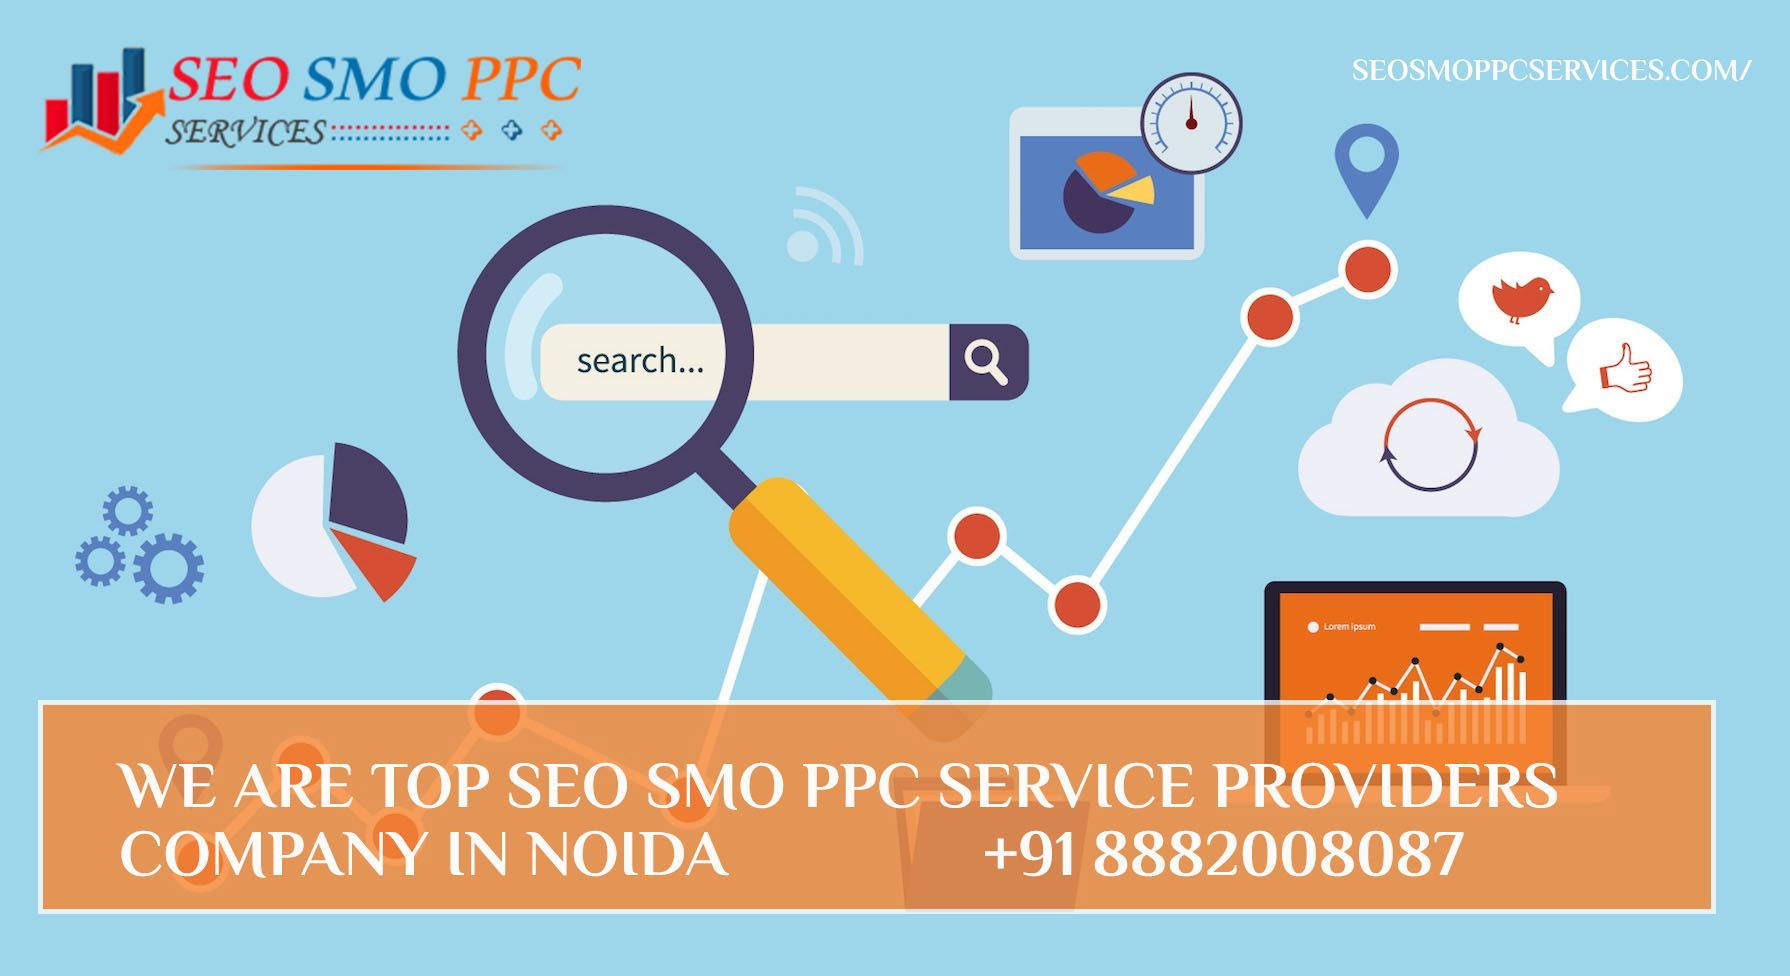 SEO SMO PPC Services - Are you looking Google Friendly SEO